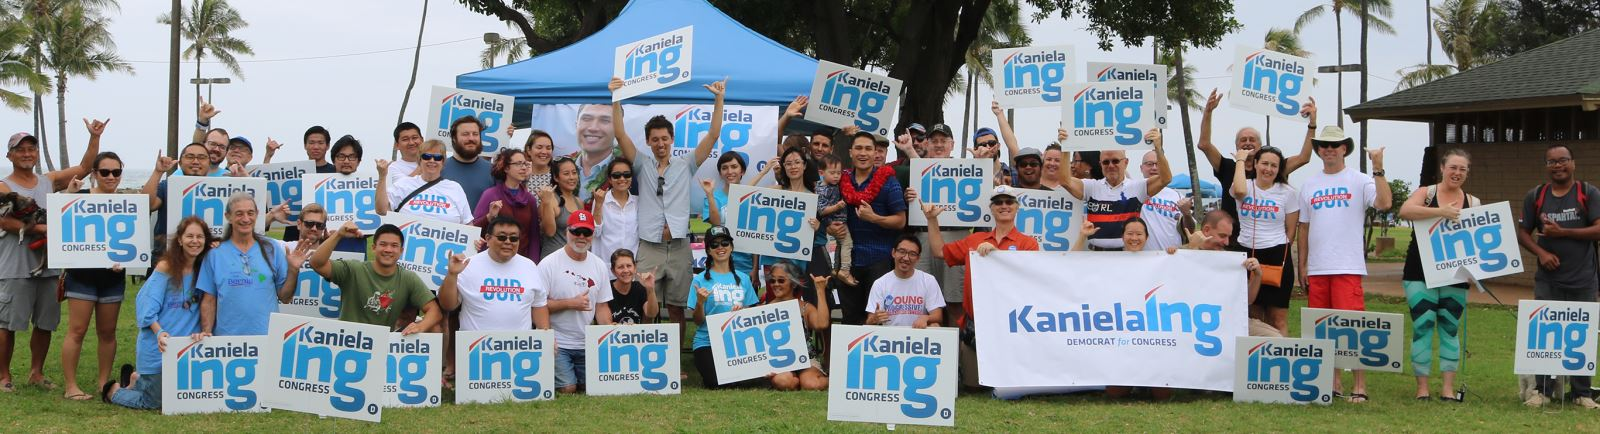 Kaniela Ing For Congress